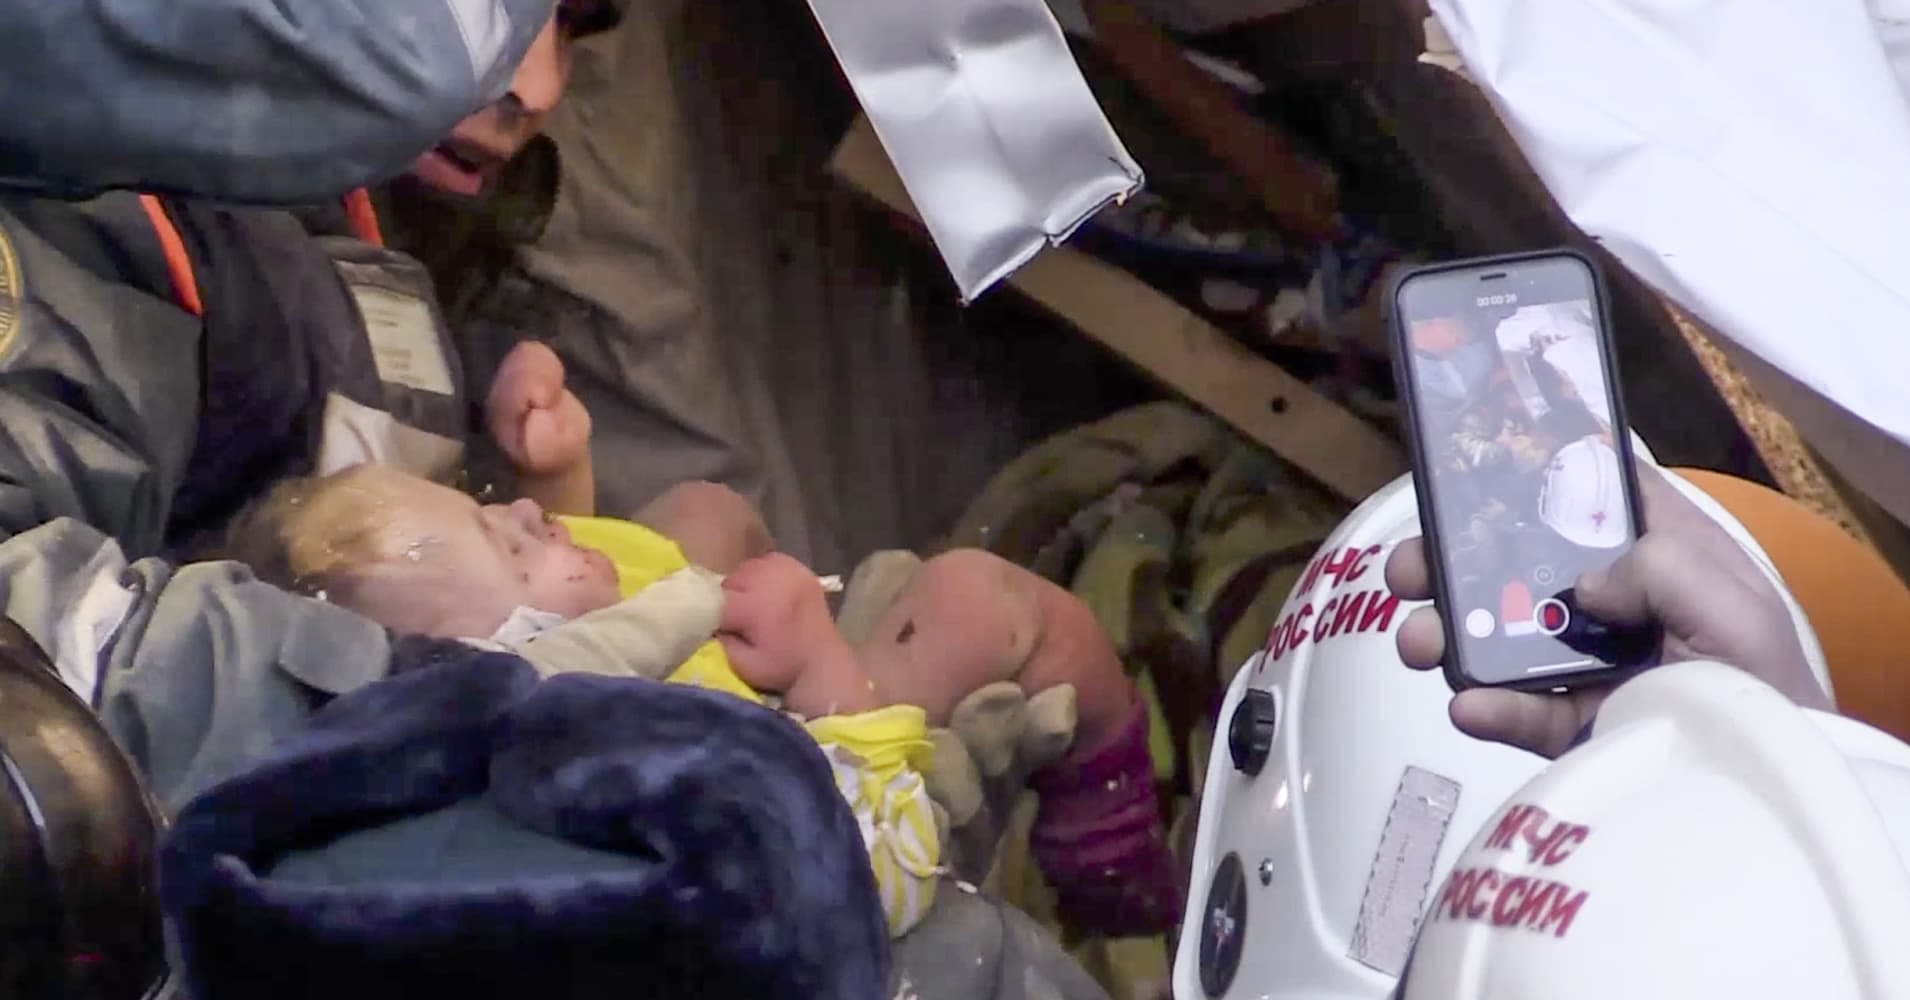 Baby rescued from rubble 35 hours after apartment collapse